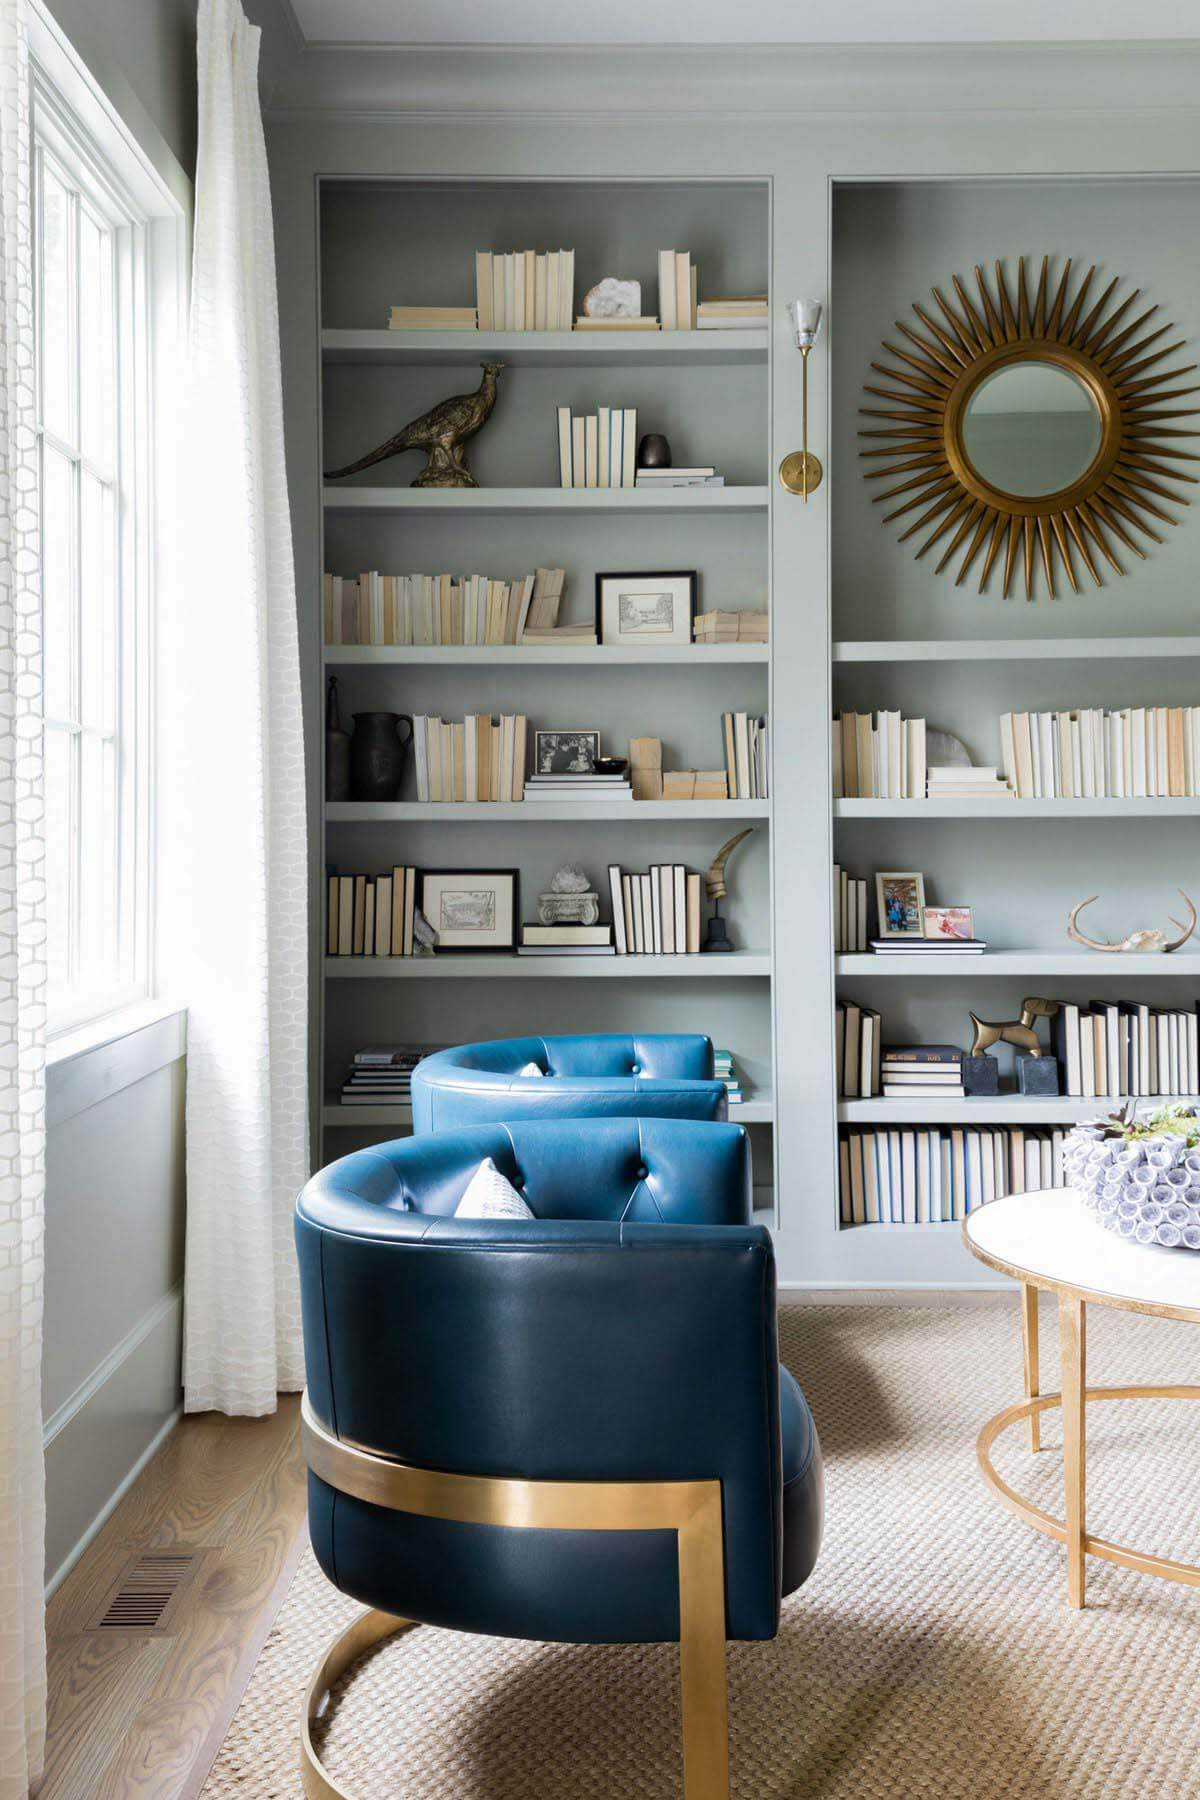 In-home library with shelves and blue chairs